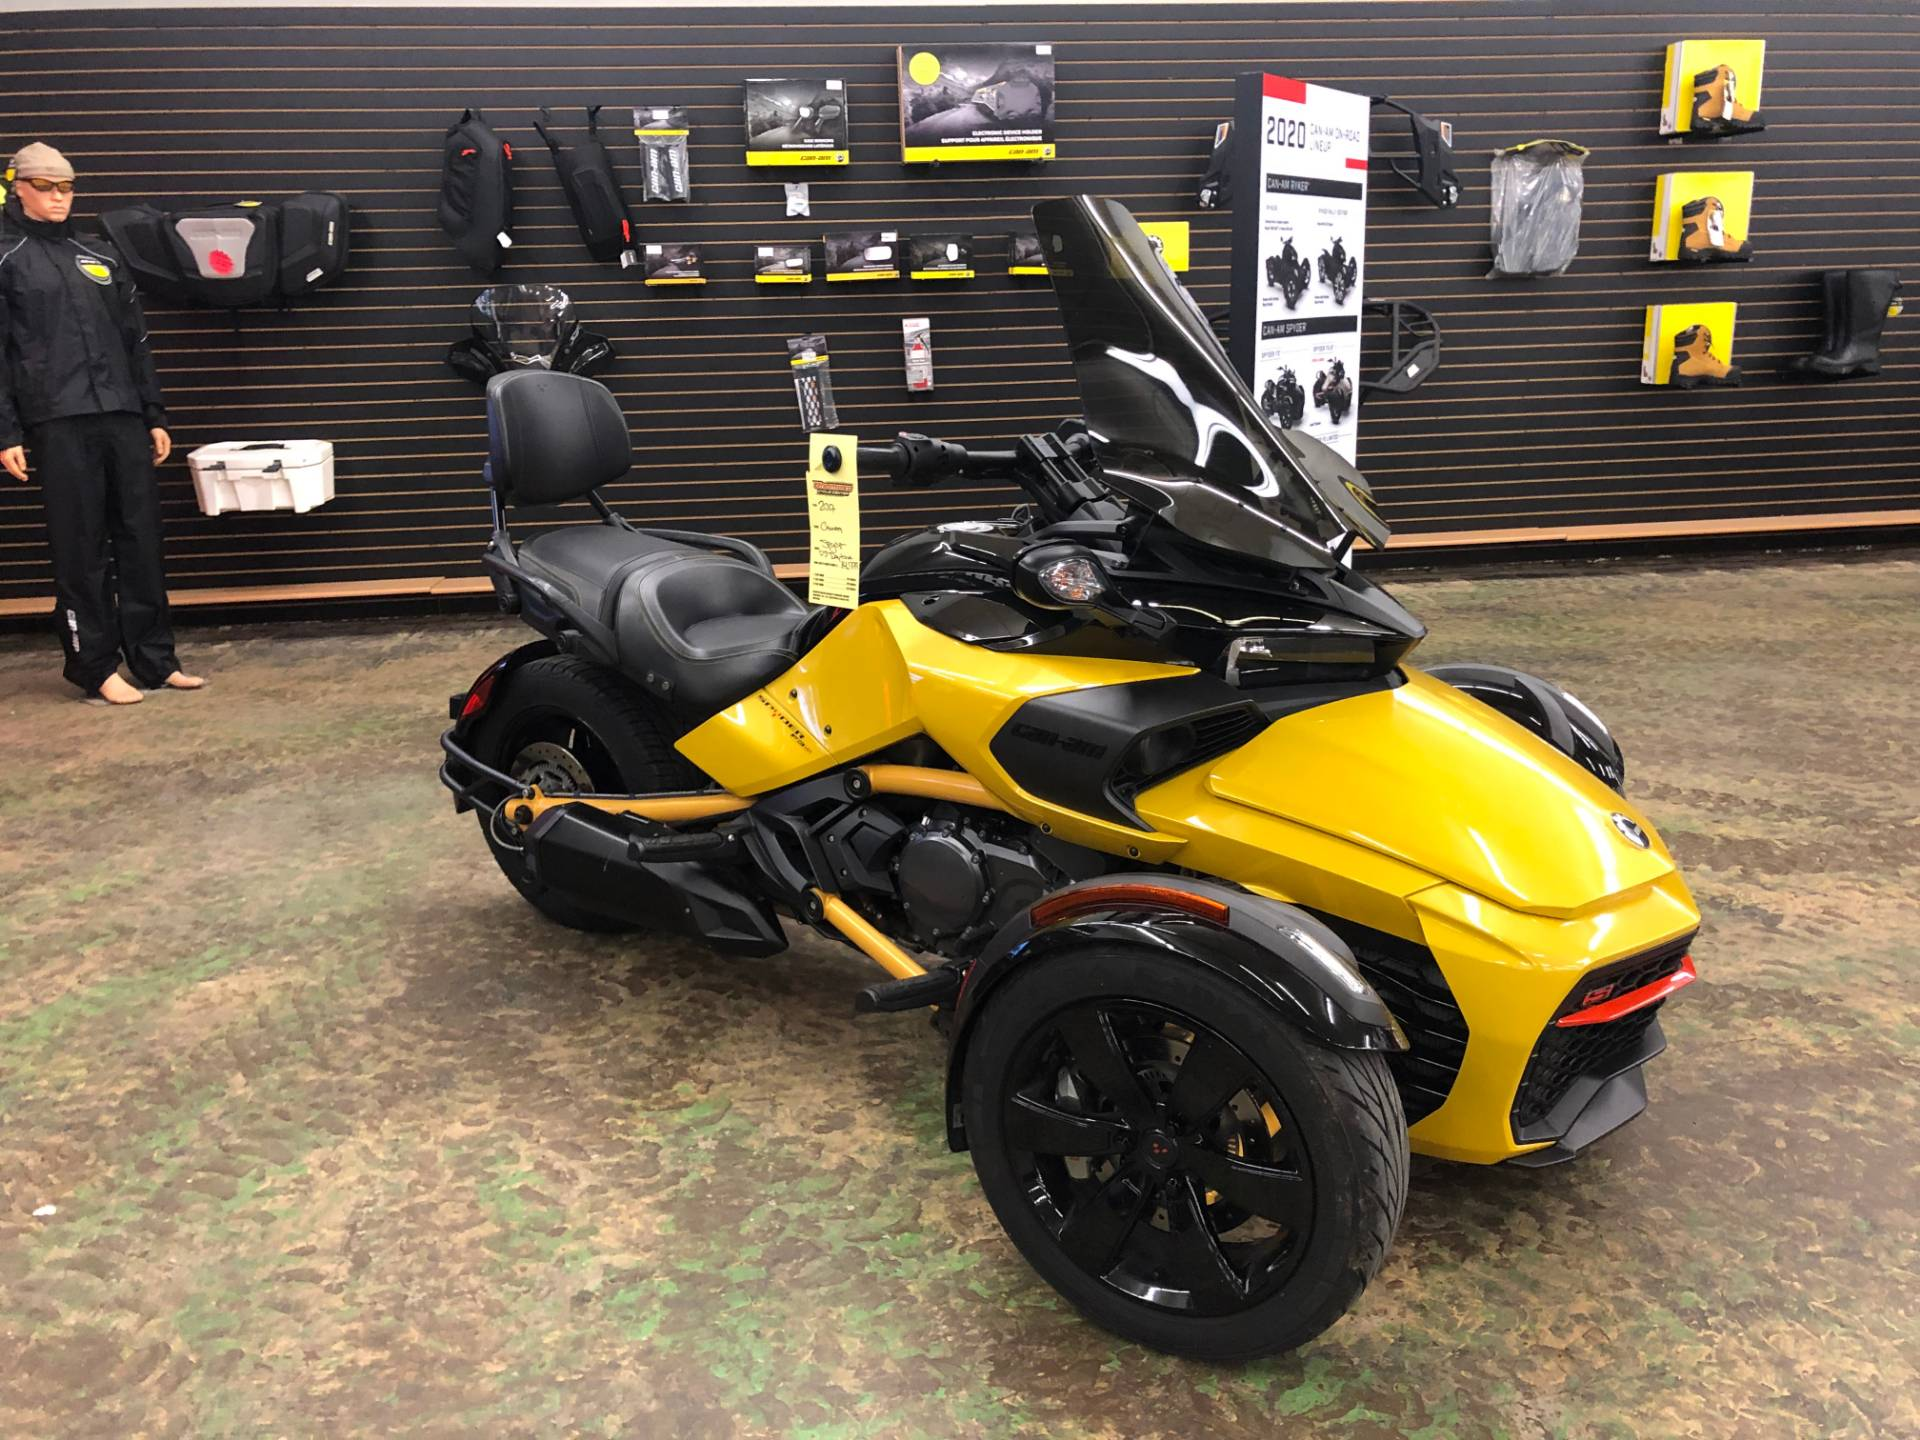 2017 Can-Am Spyder F3-S Daytona 500 SM6 in Tyrone, Pennsylvania - Photo 1